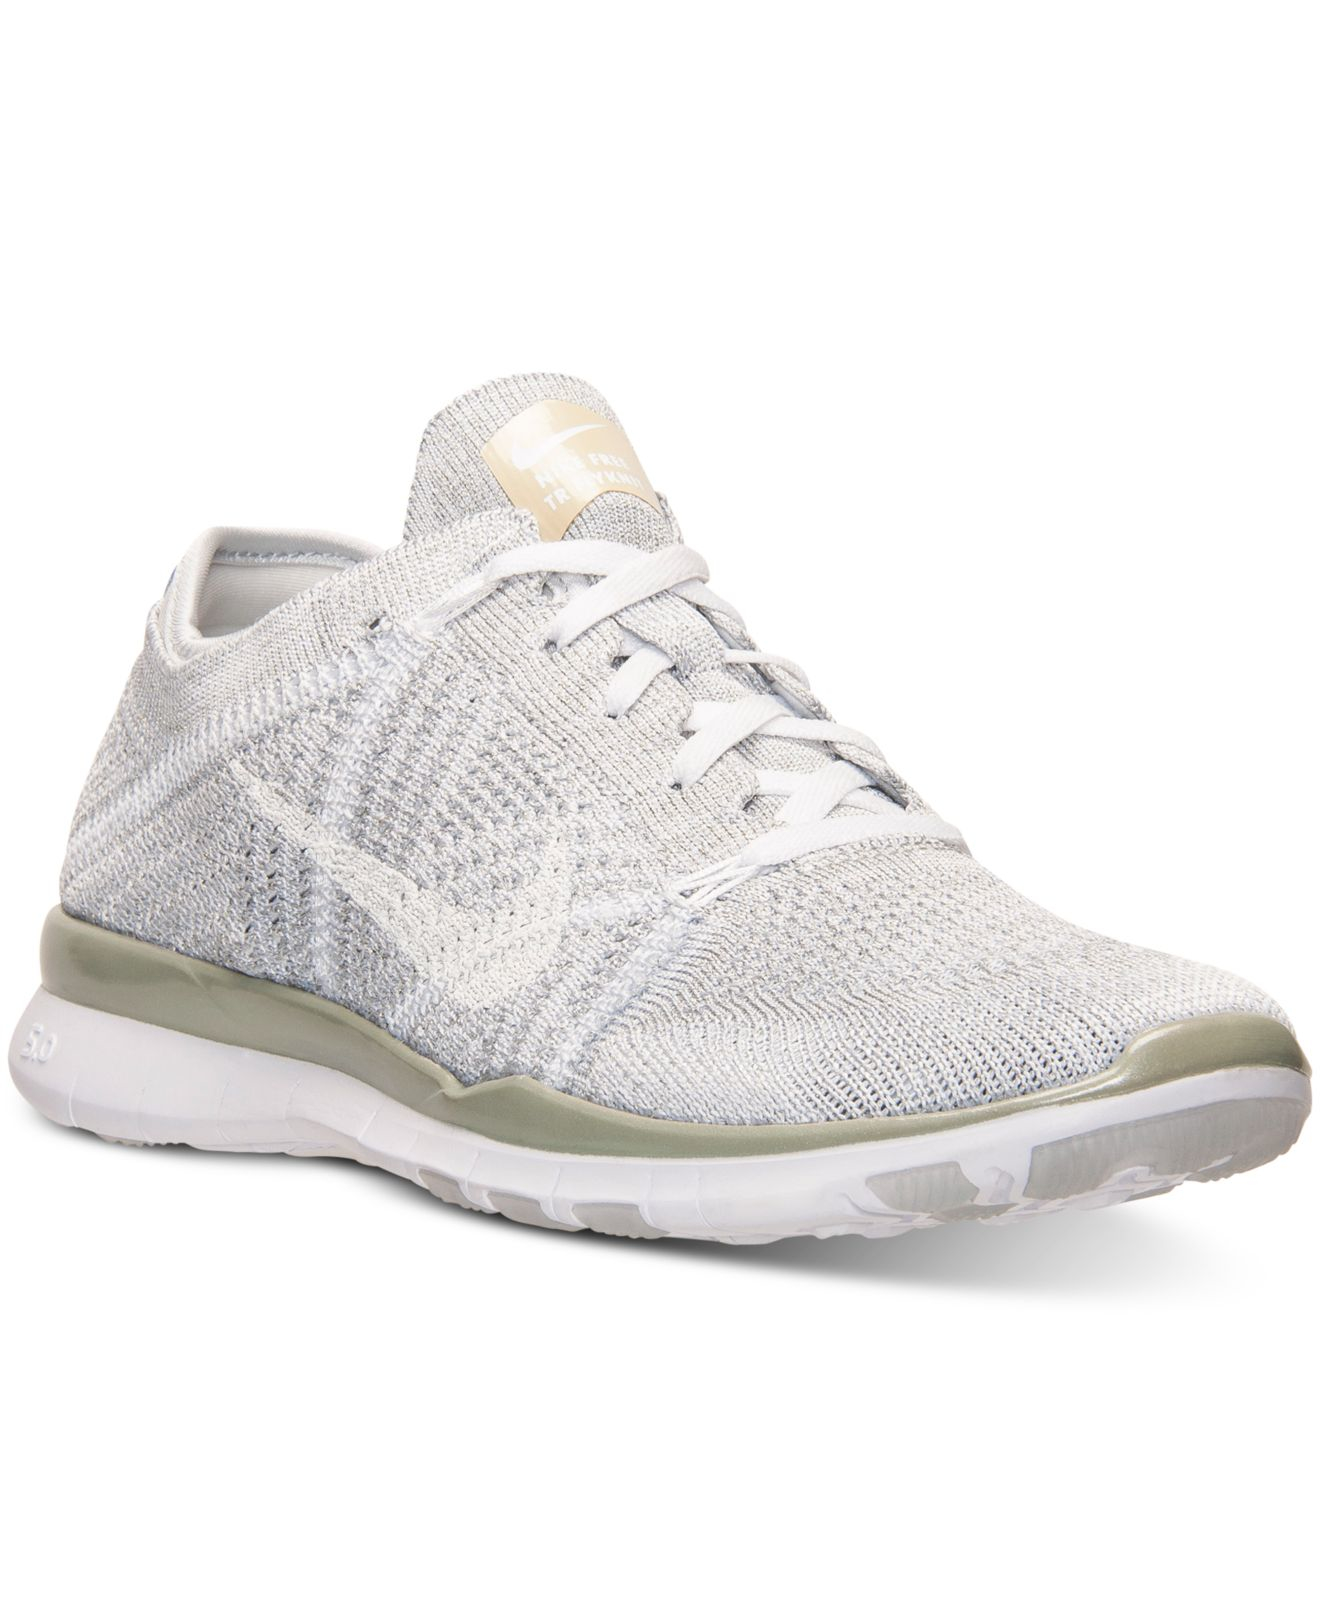 mens nike free tr flyknit 5.0 all gold